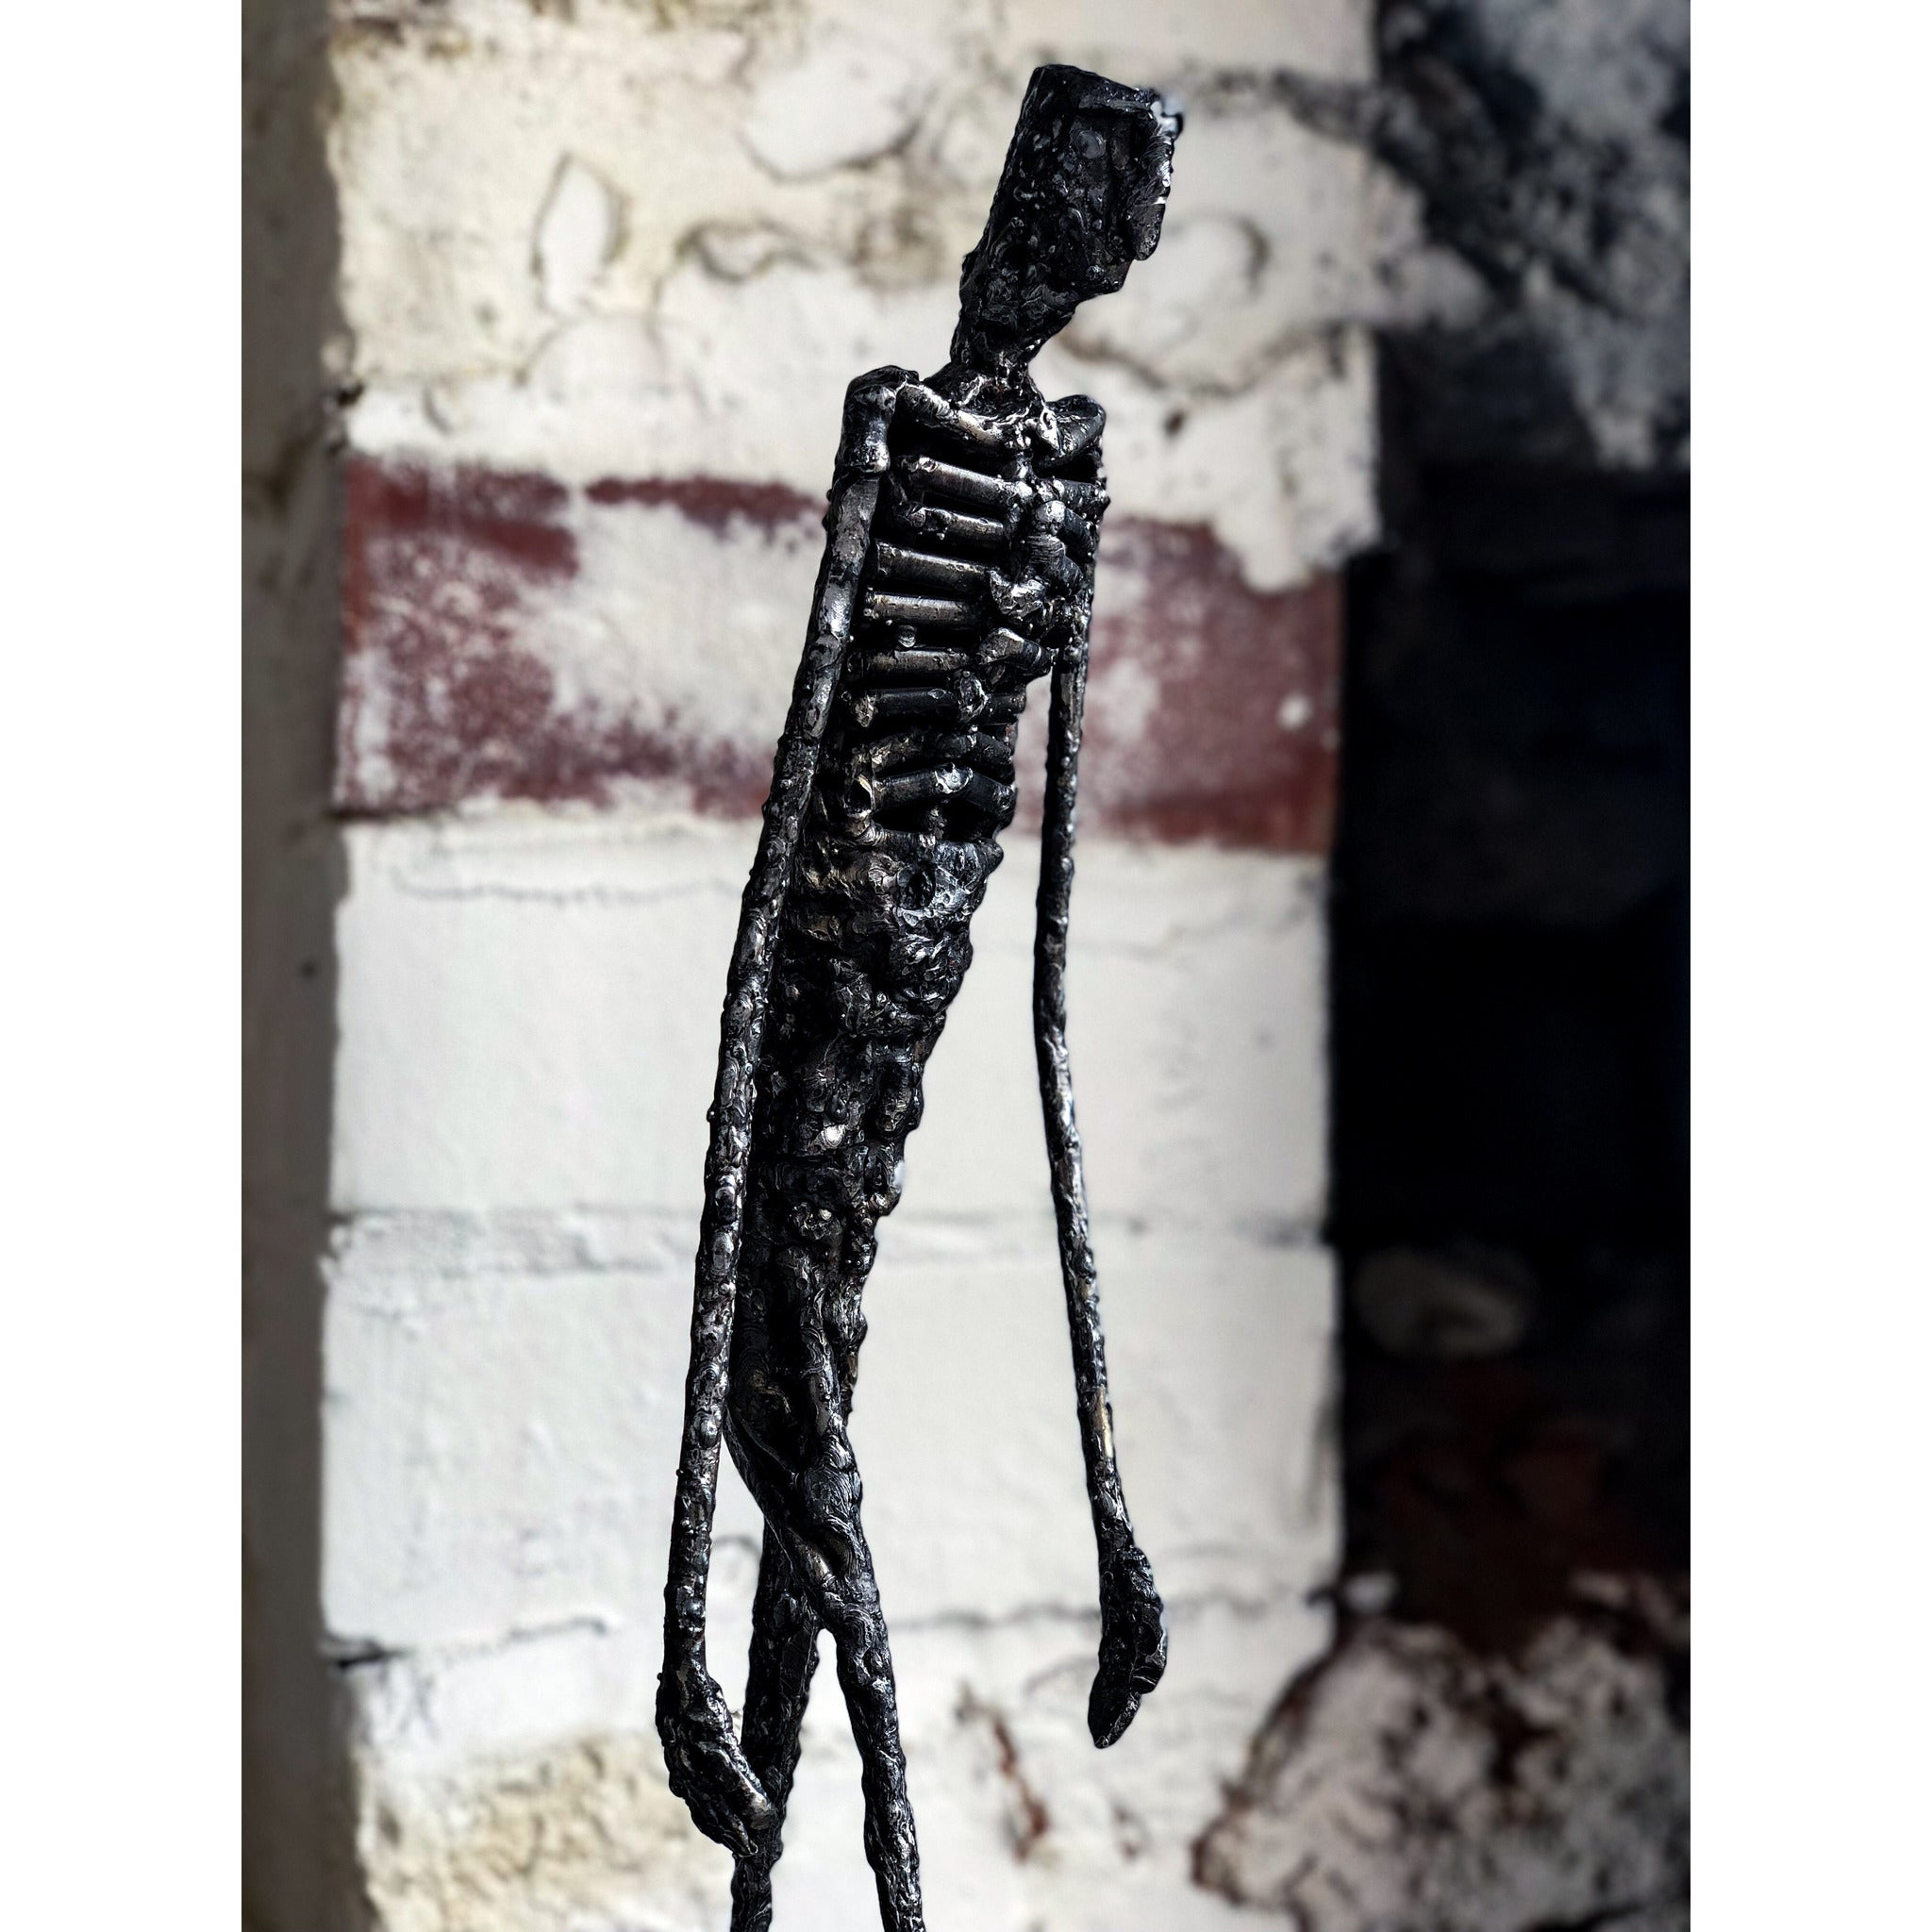 Striding Jaco sculpture by Don Modenbach - Egoiste Gallery